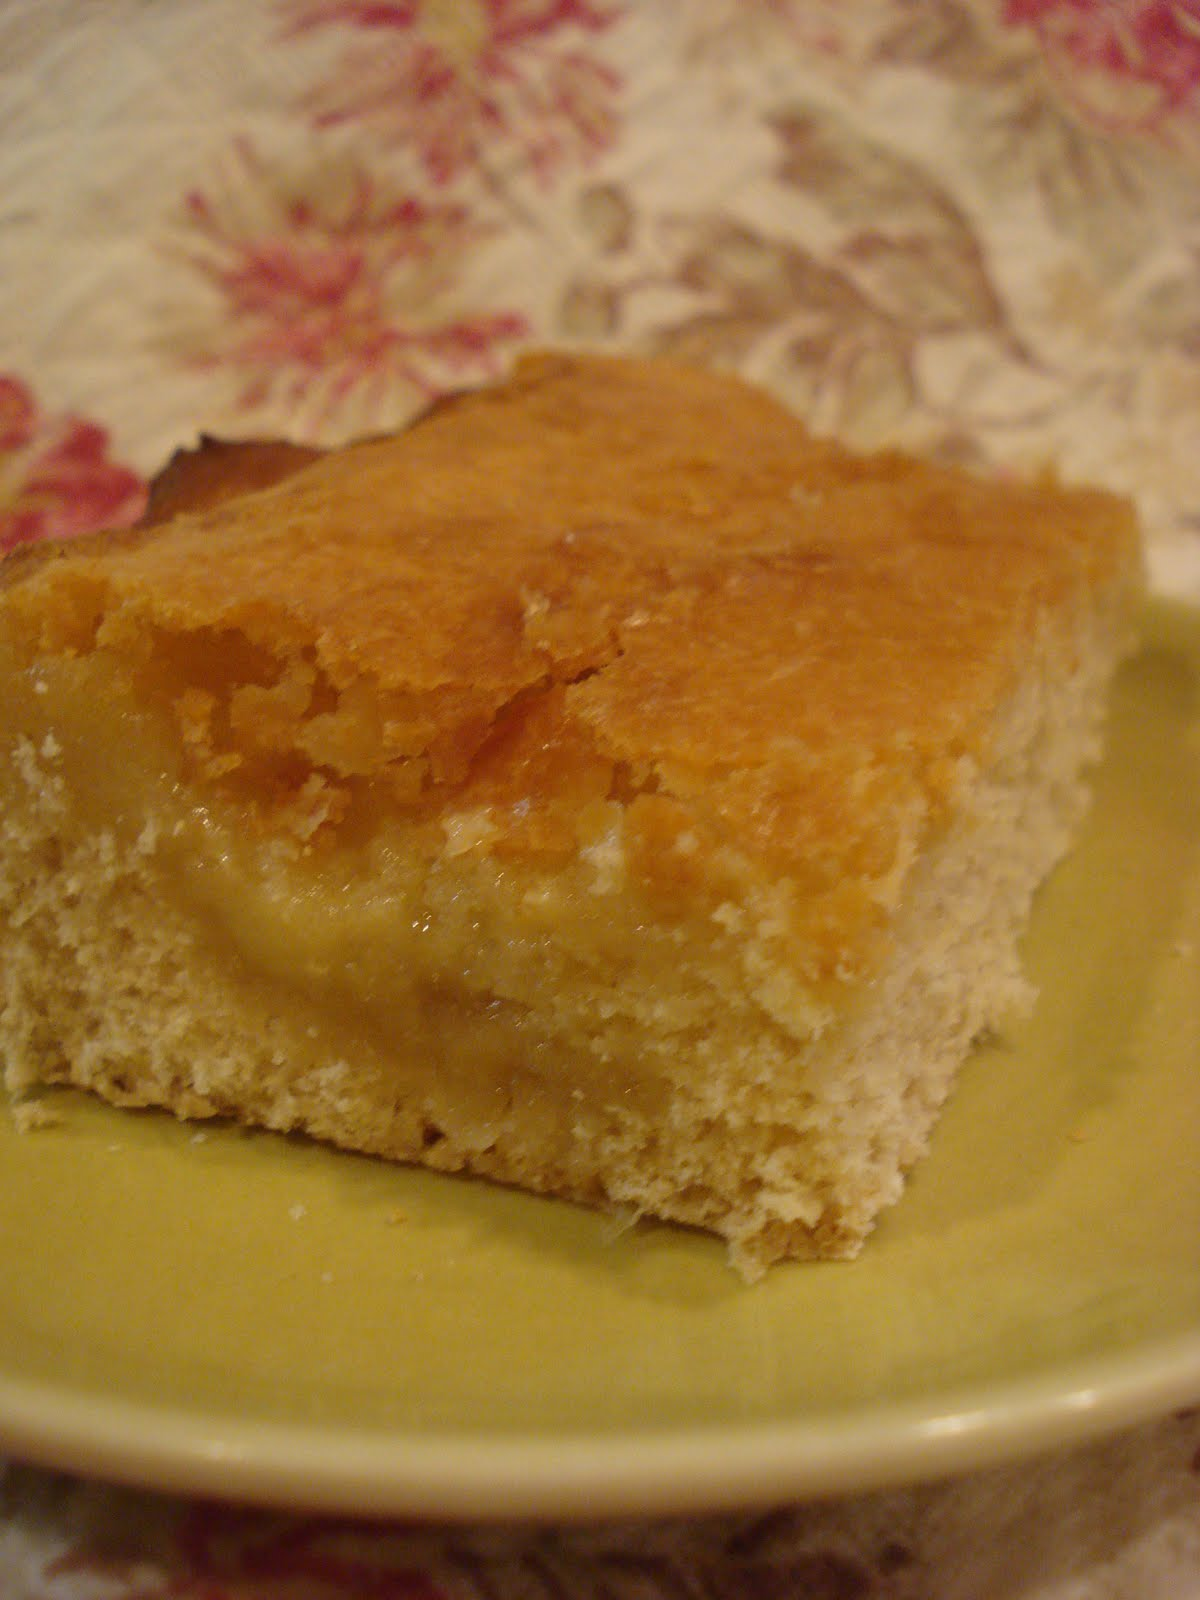 ... cake butter cake gooey butter cake i philadelphia german butter cake